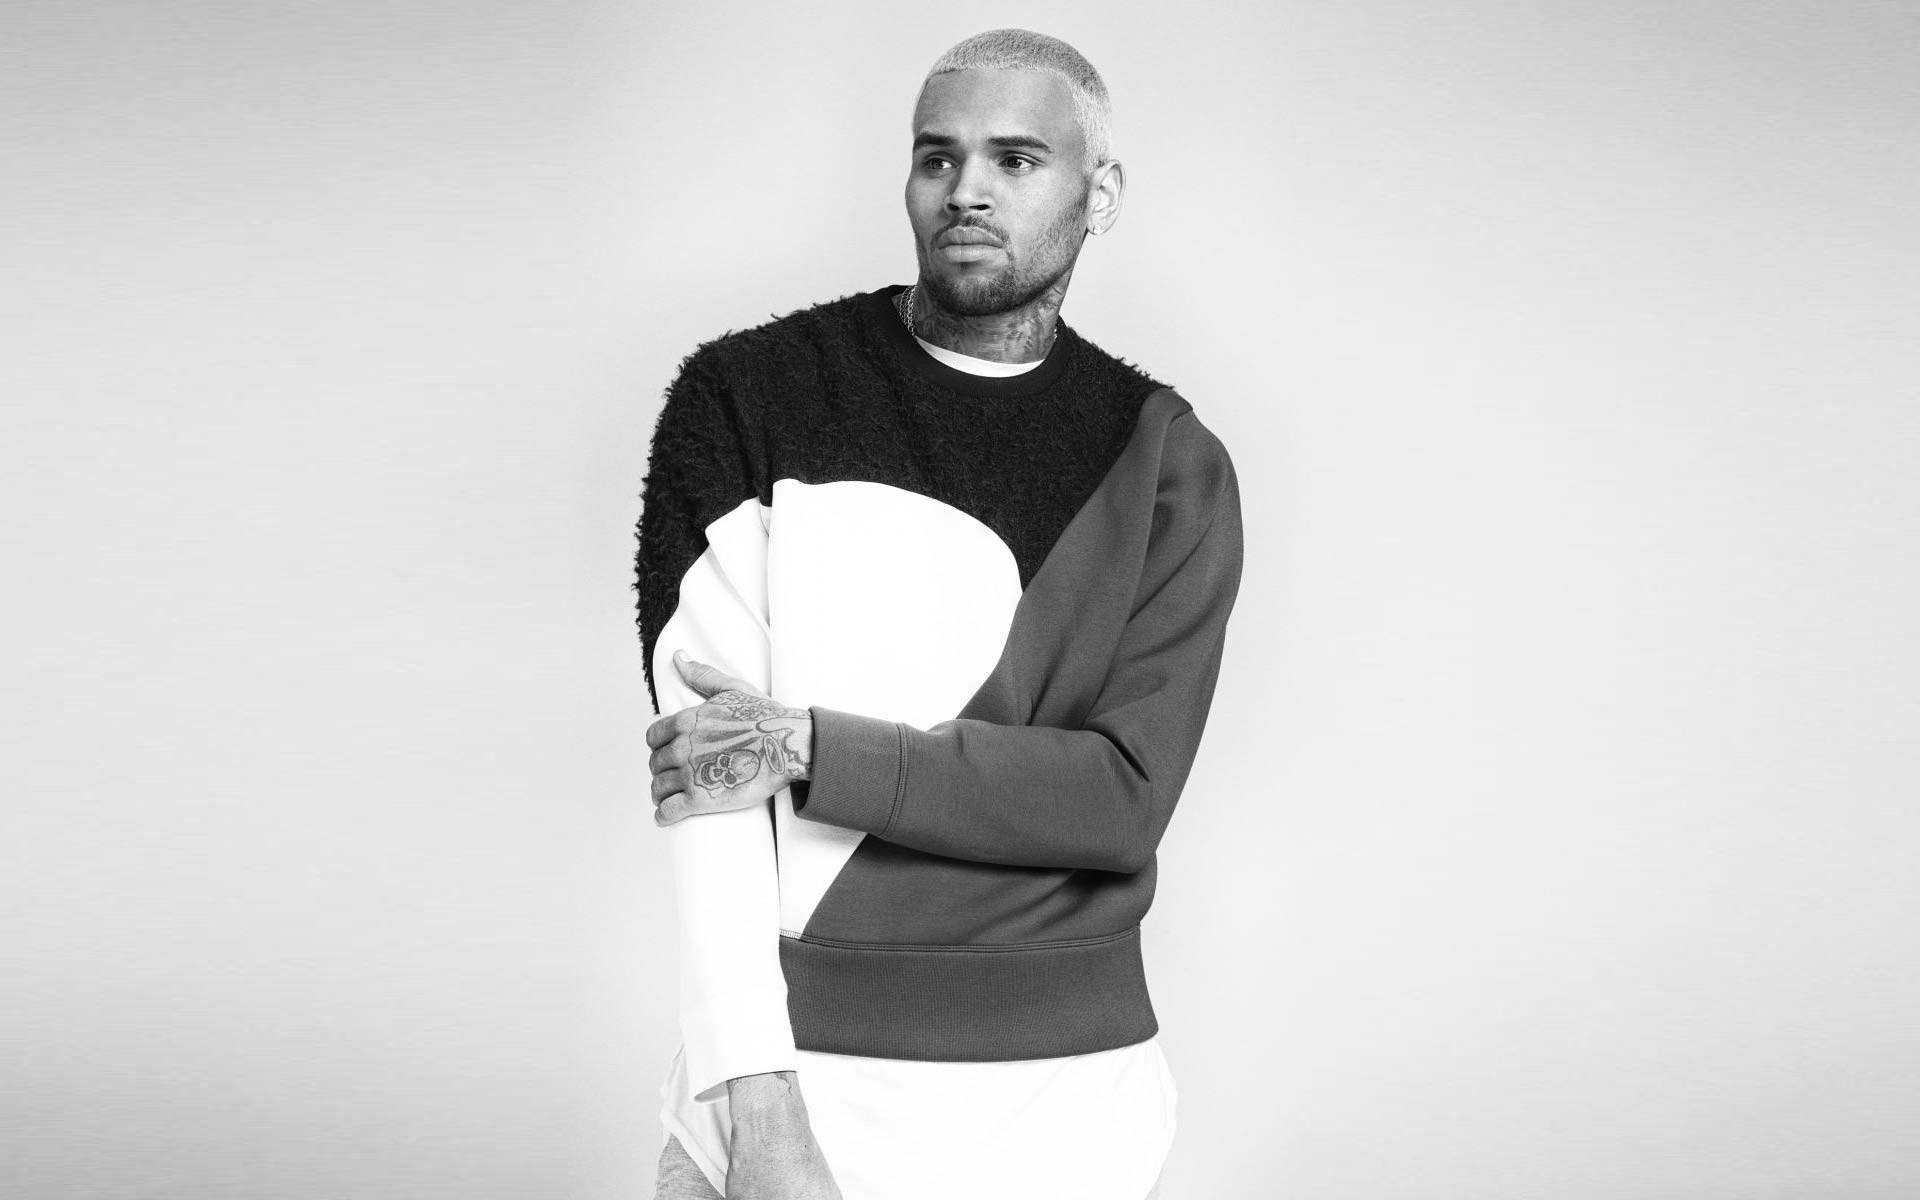 chris-brown-theme-background-images-Peck-Williams-wallpaper-wpc5803446